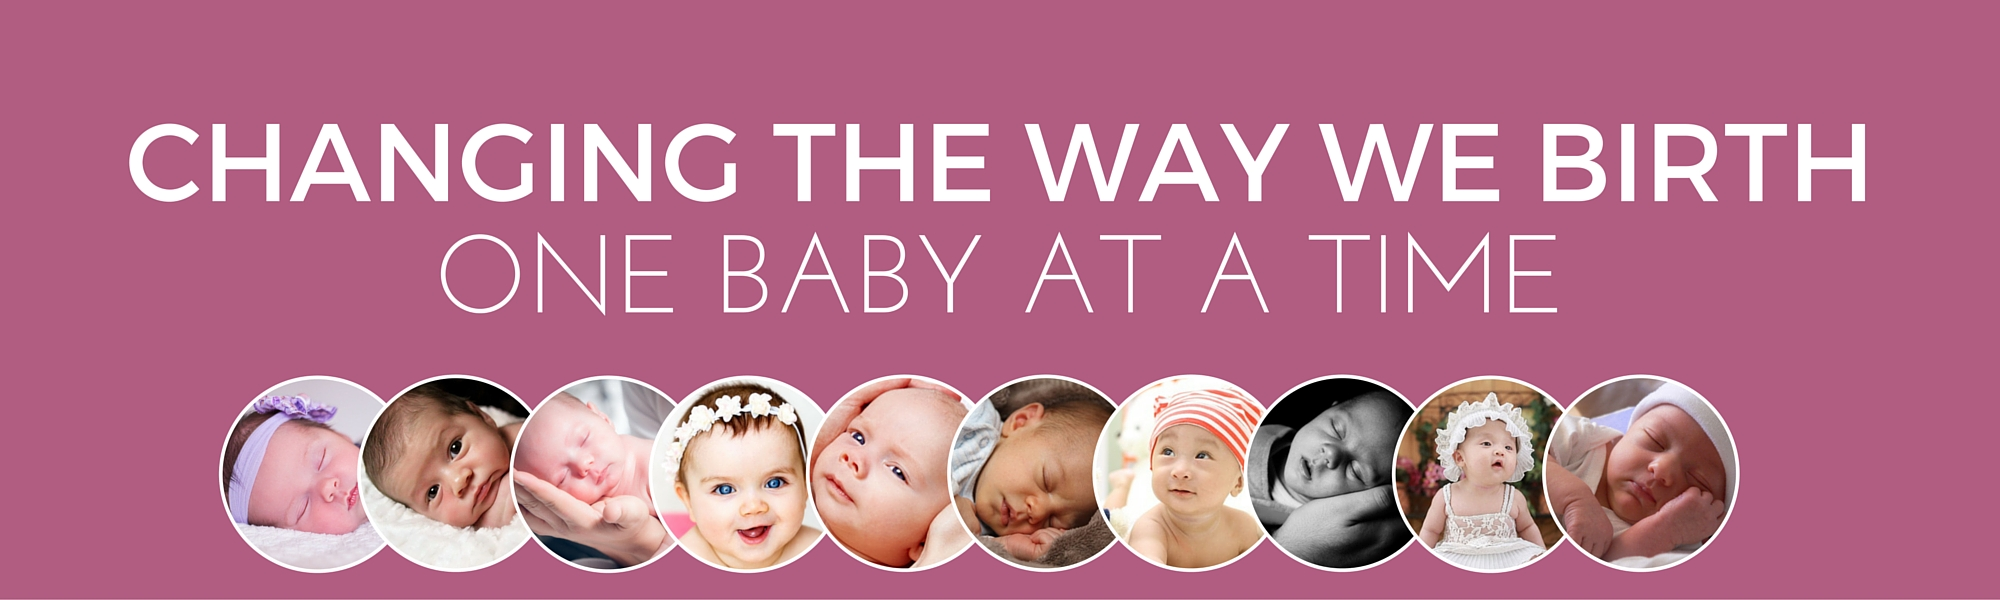 Changing the way we birth